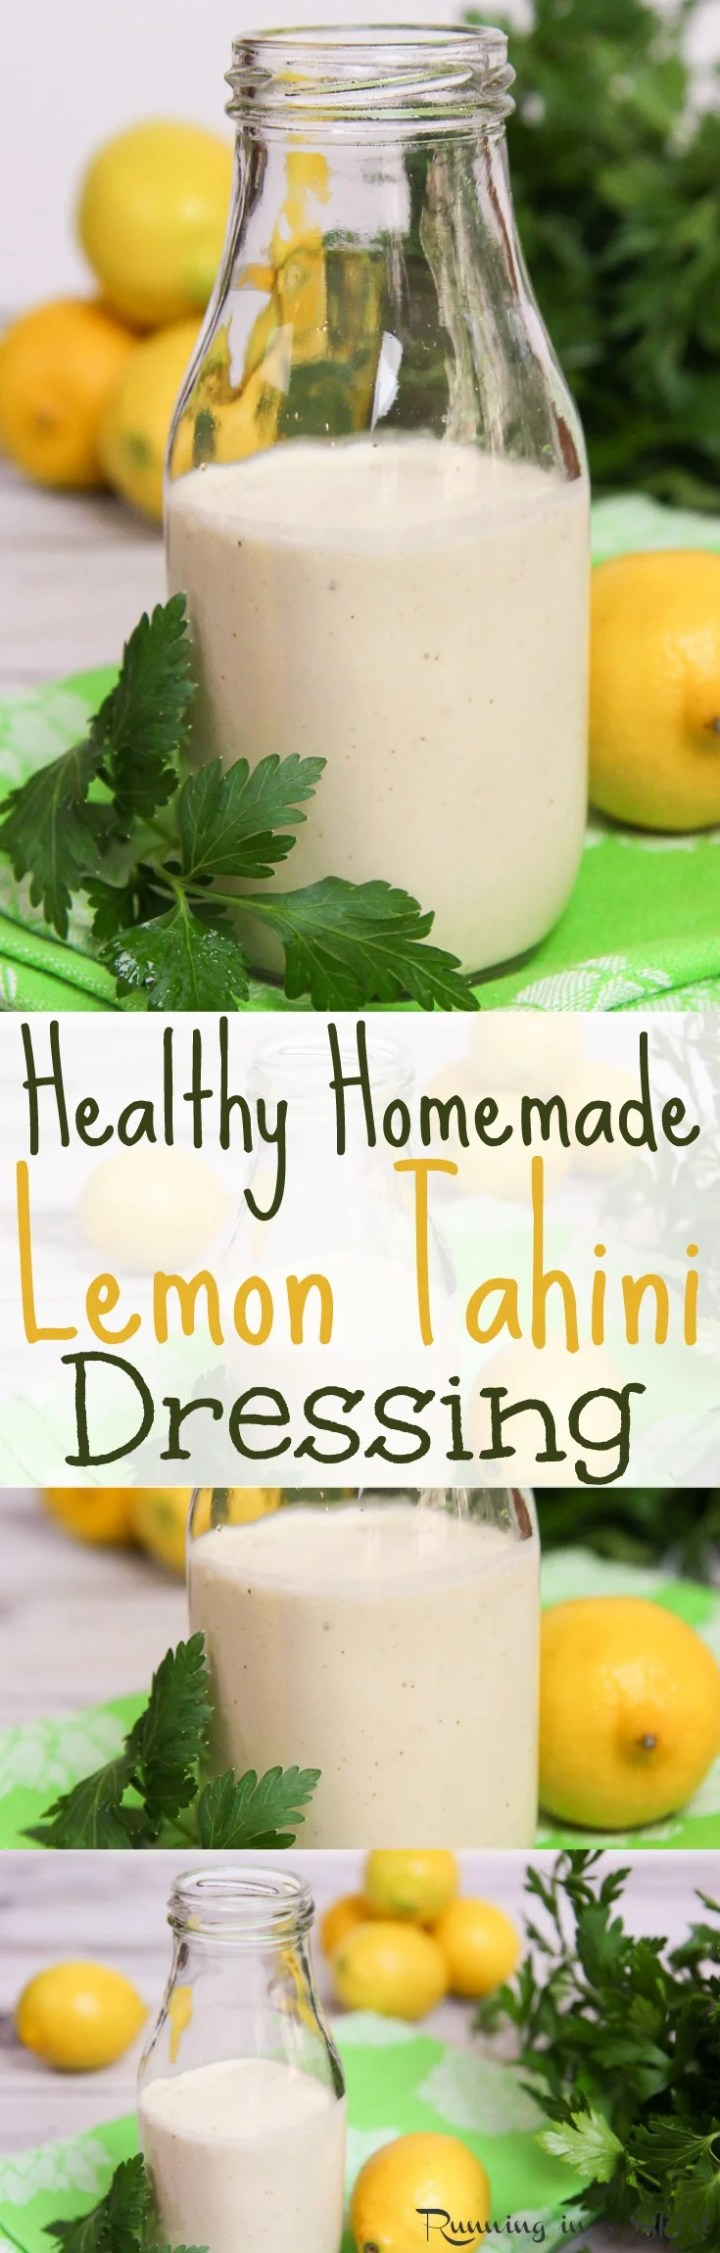 The Best 4 Ingredient Lemon Tahini Dressing recipe. This healthy, homemade, clean eating dressing is easy and vegan. It's great for salads, veggies, roasted vegetables, a buddha bowl or any vegetarian dish. Tastes amazing! / Running in a Skirt via @juliewunder